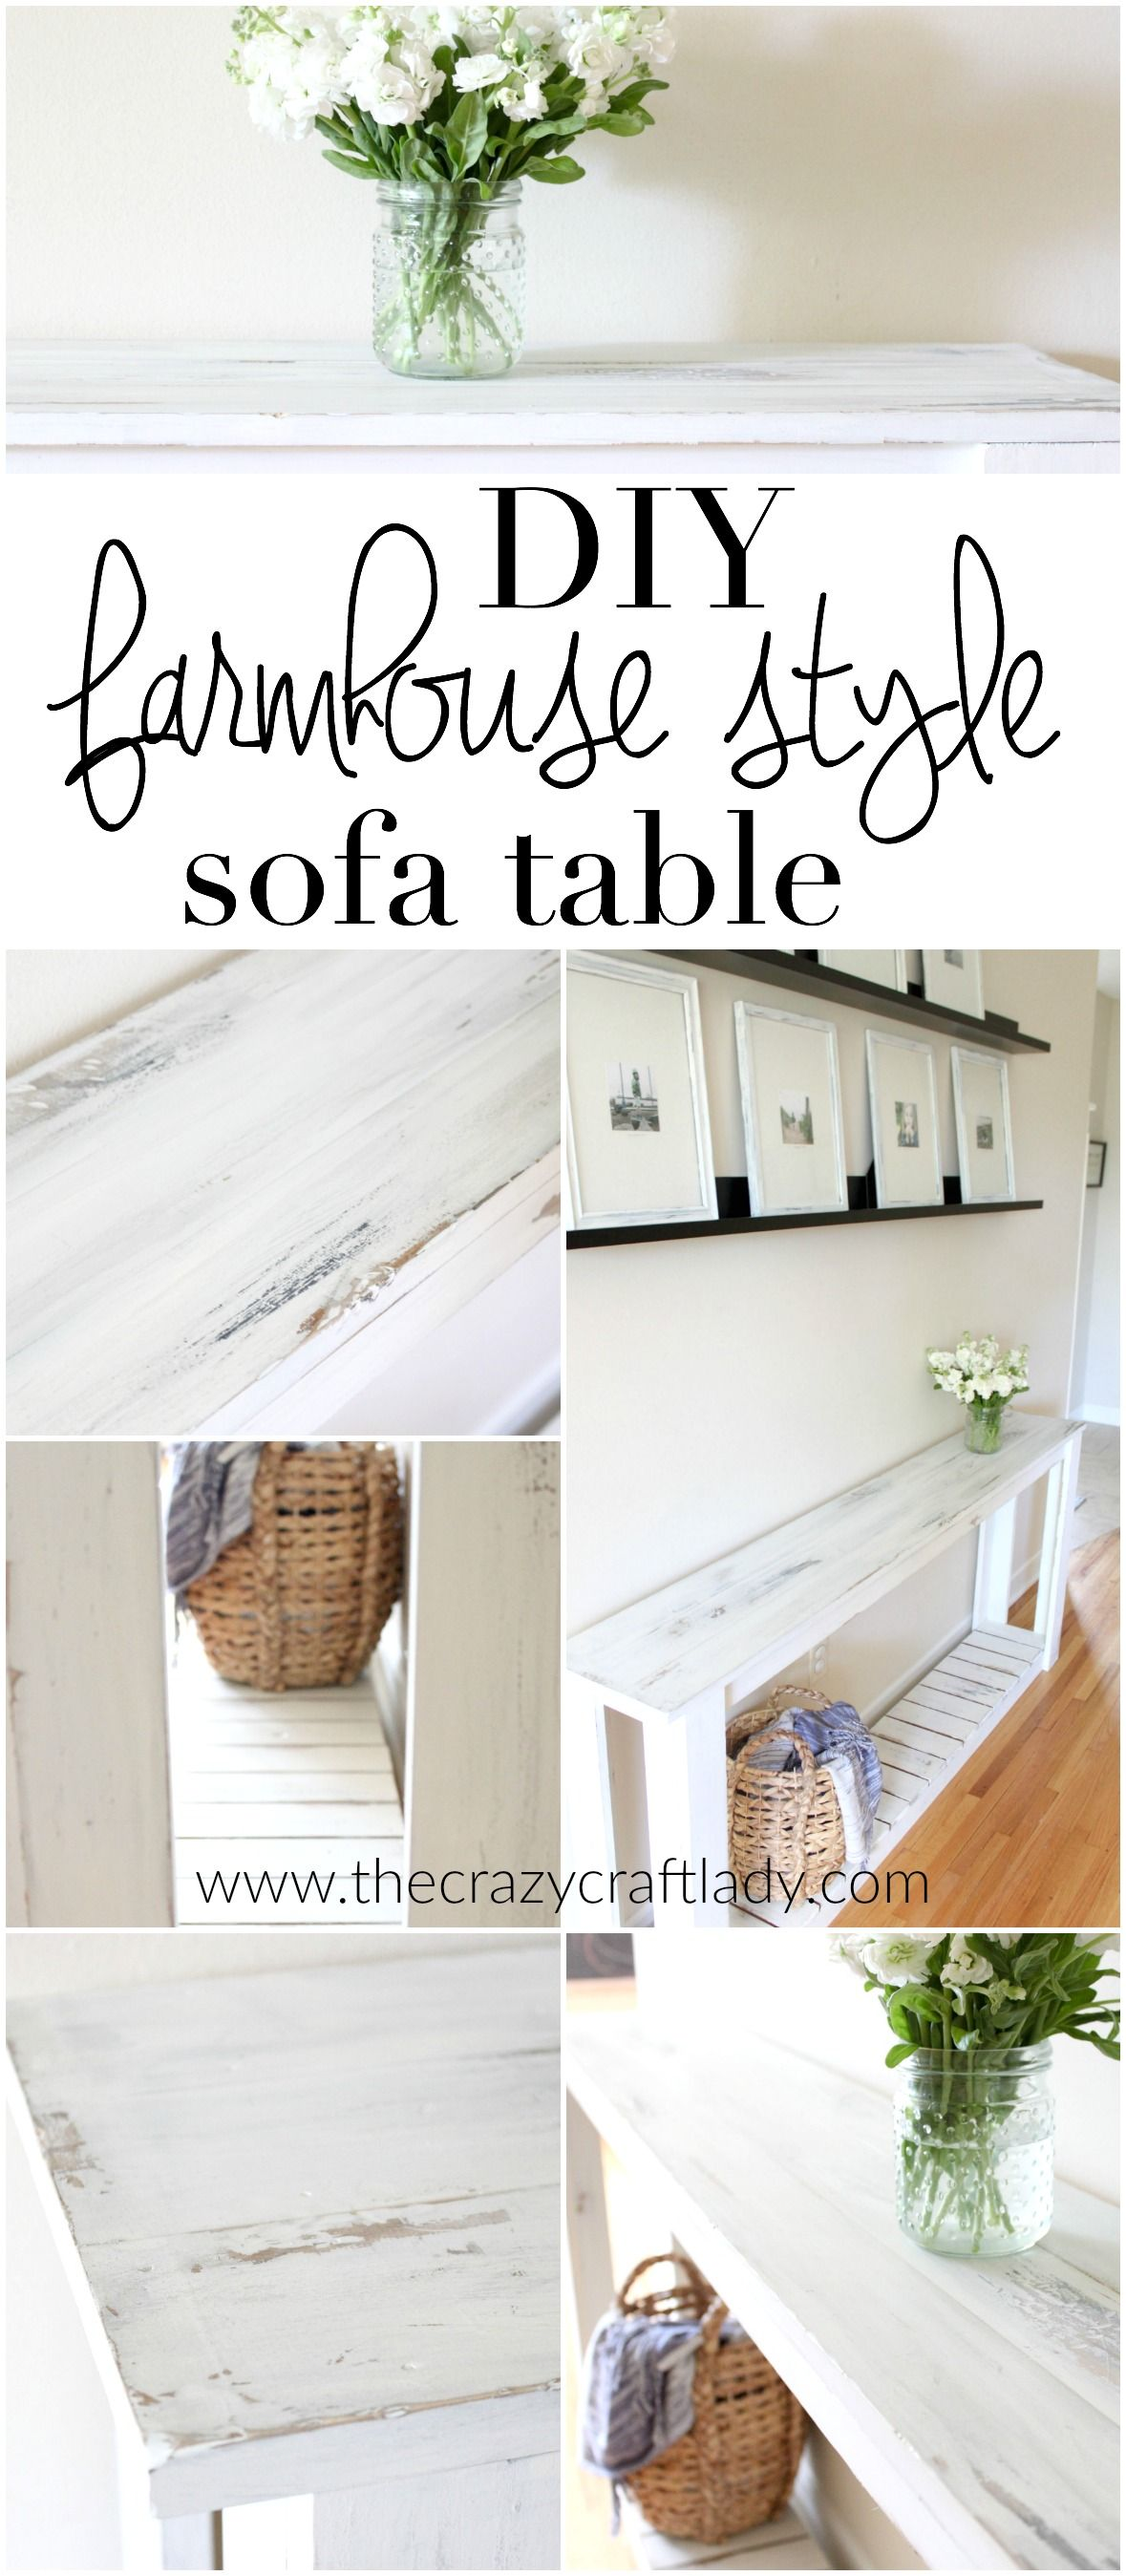 How to make a sofa table out of floor boards - Diy Sofa Table Farmhouse Style